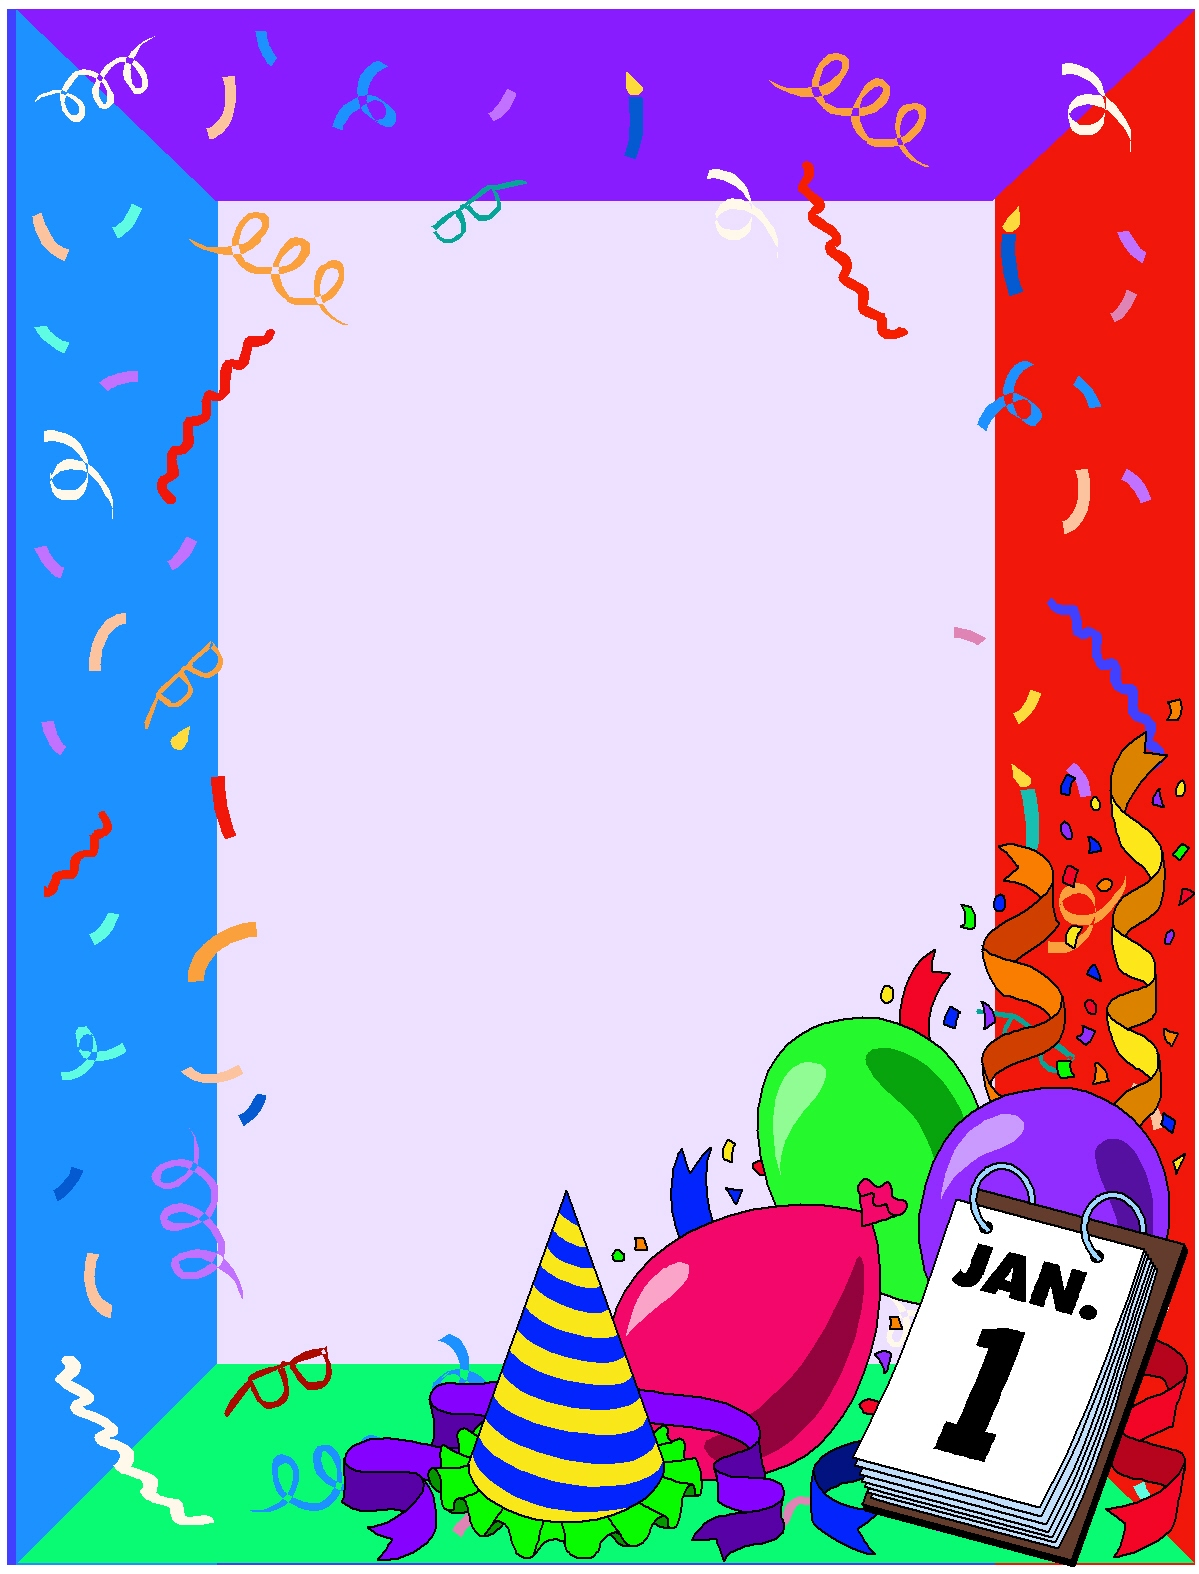 Christian Images In My Treasure Box: New Years Borders ...